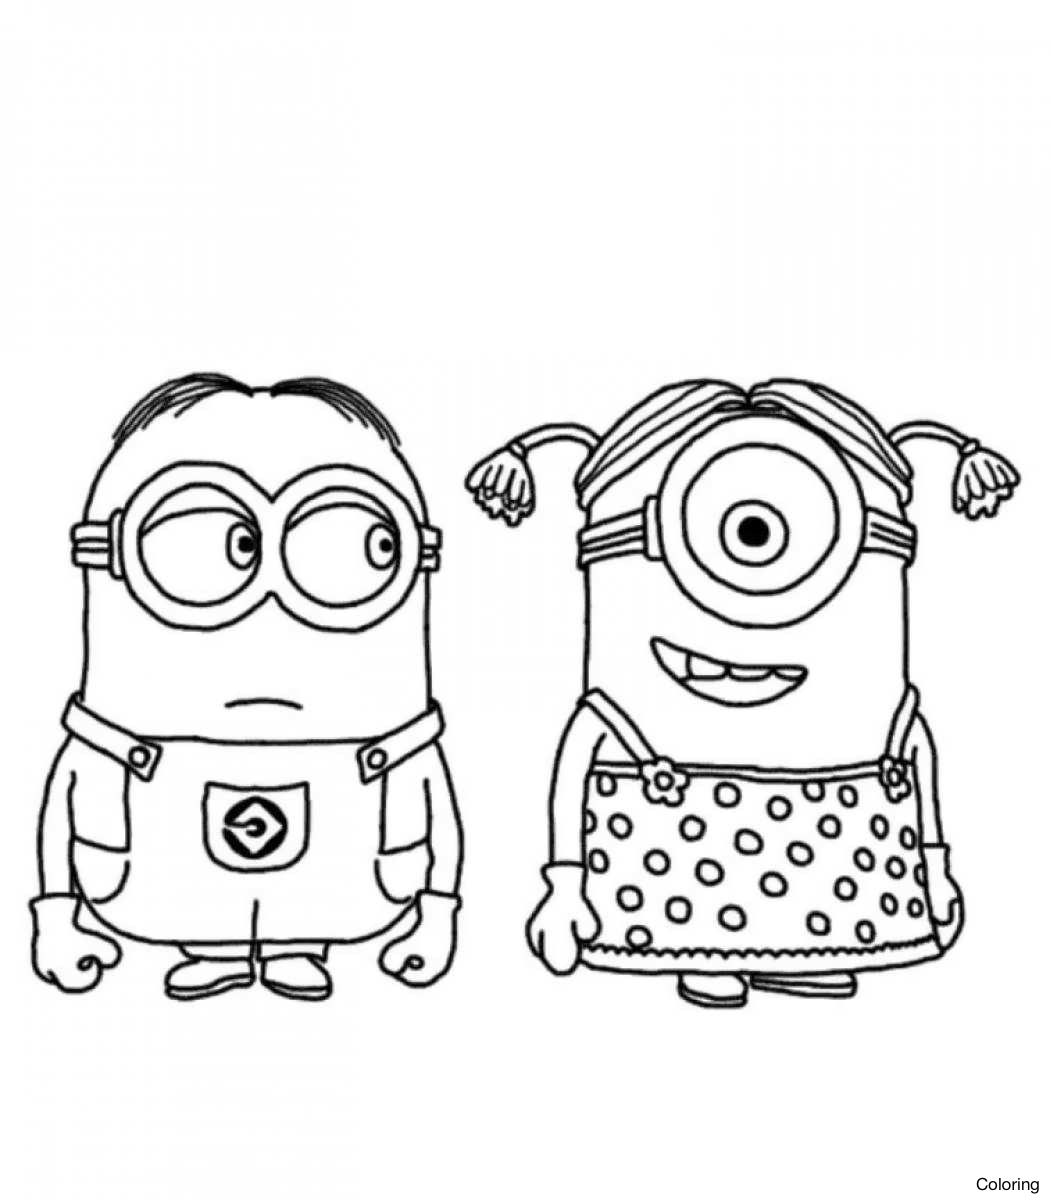 Kinder Kleurplaten Minions.Purple Minions Drawing At Getdrawings Com Free For Personal Use